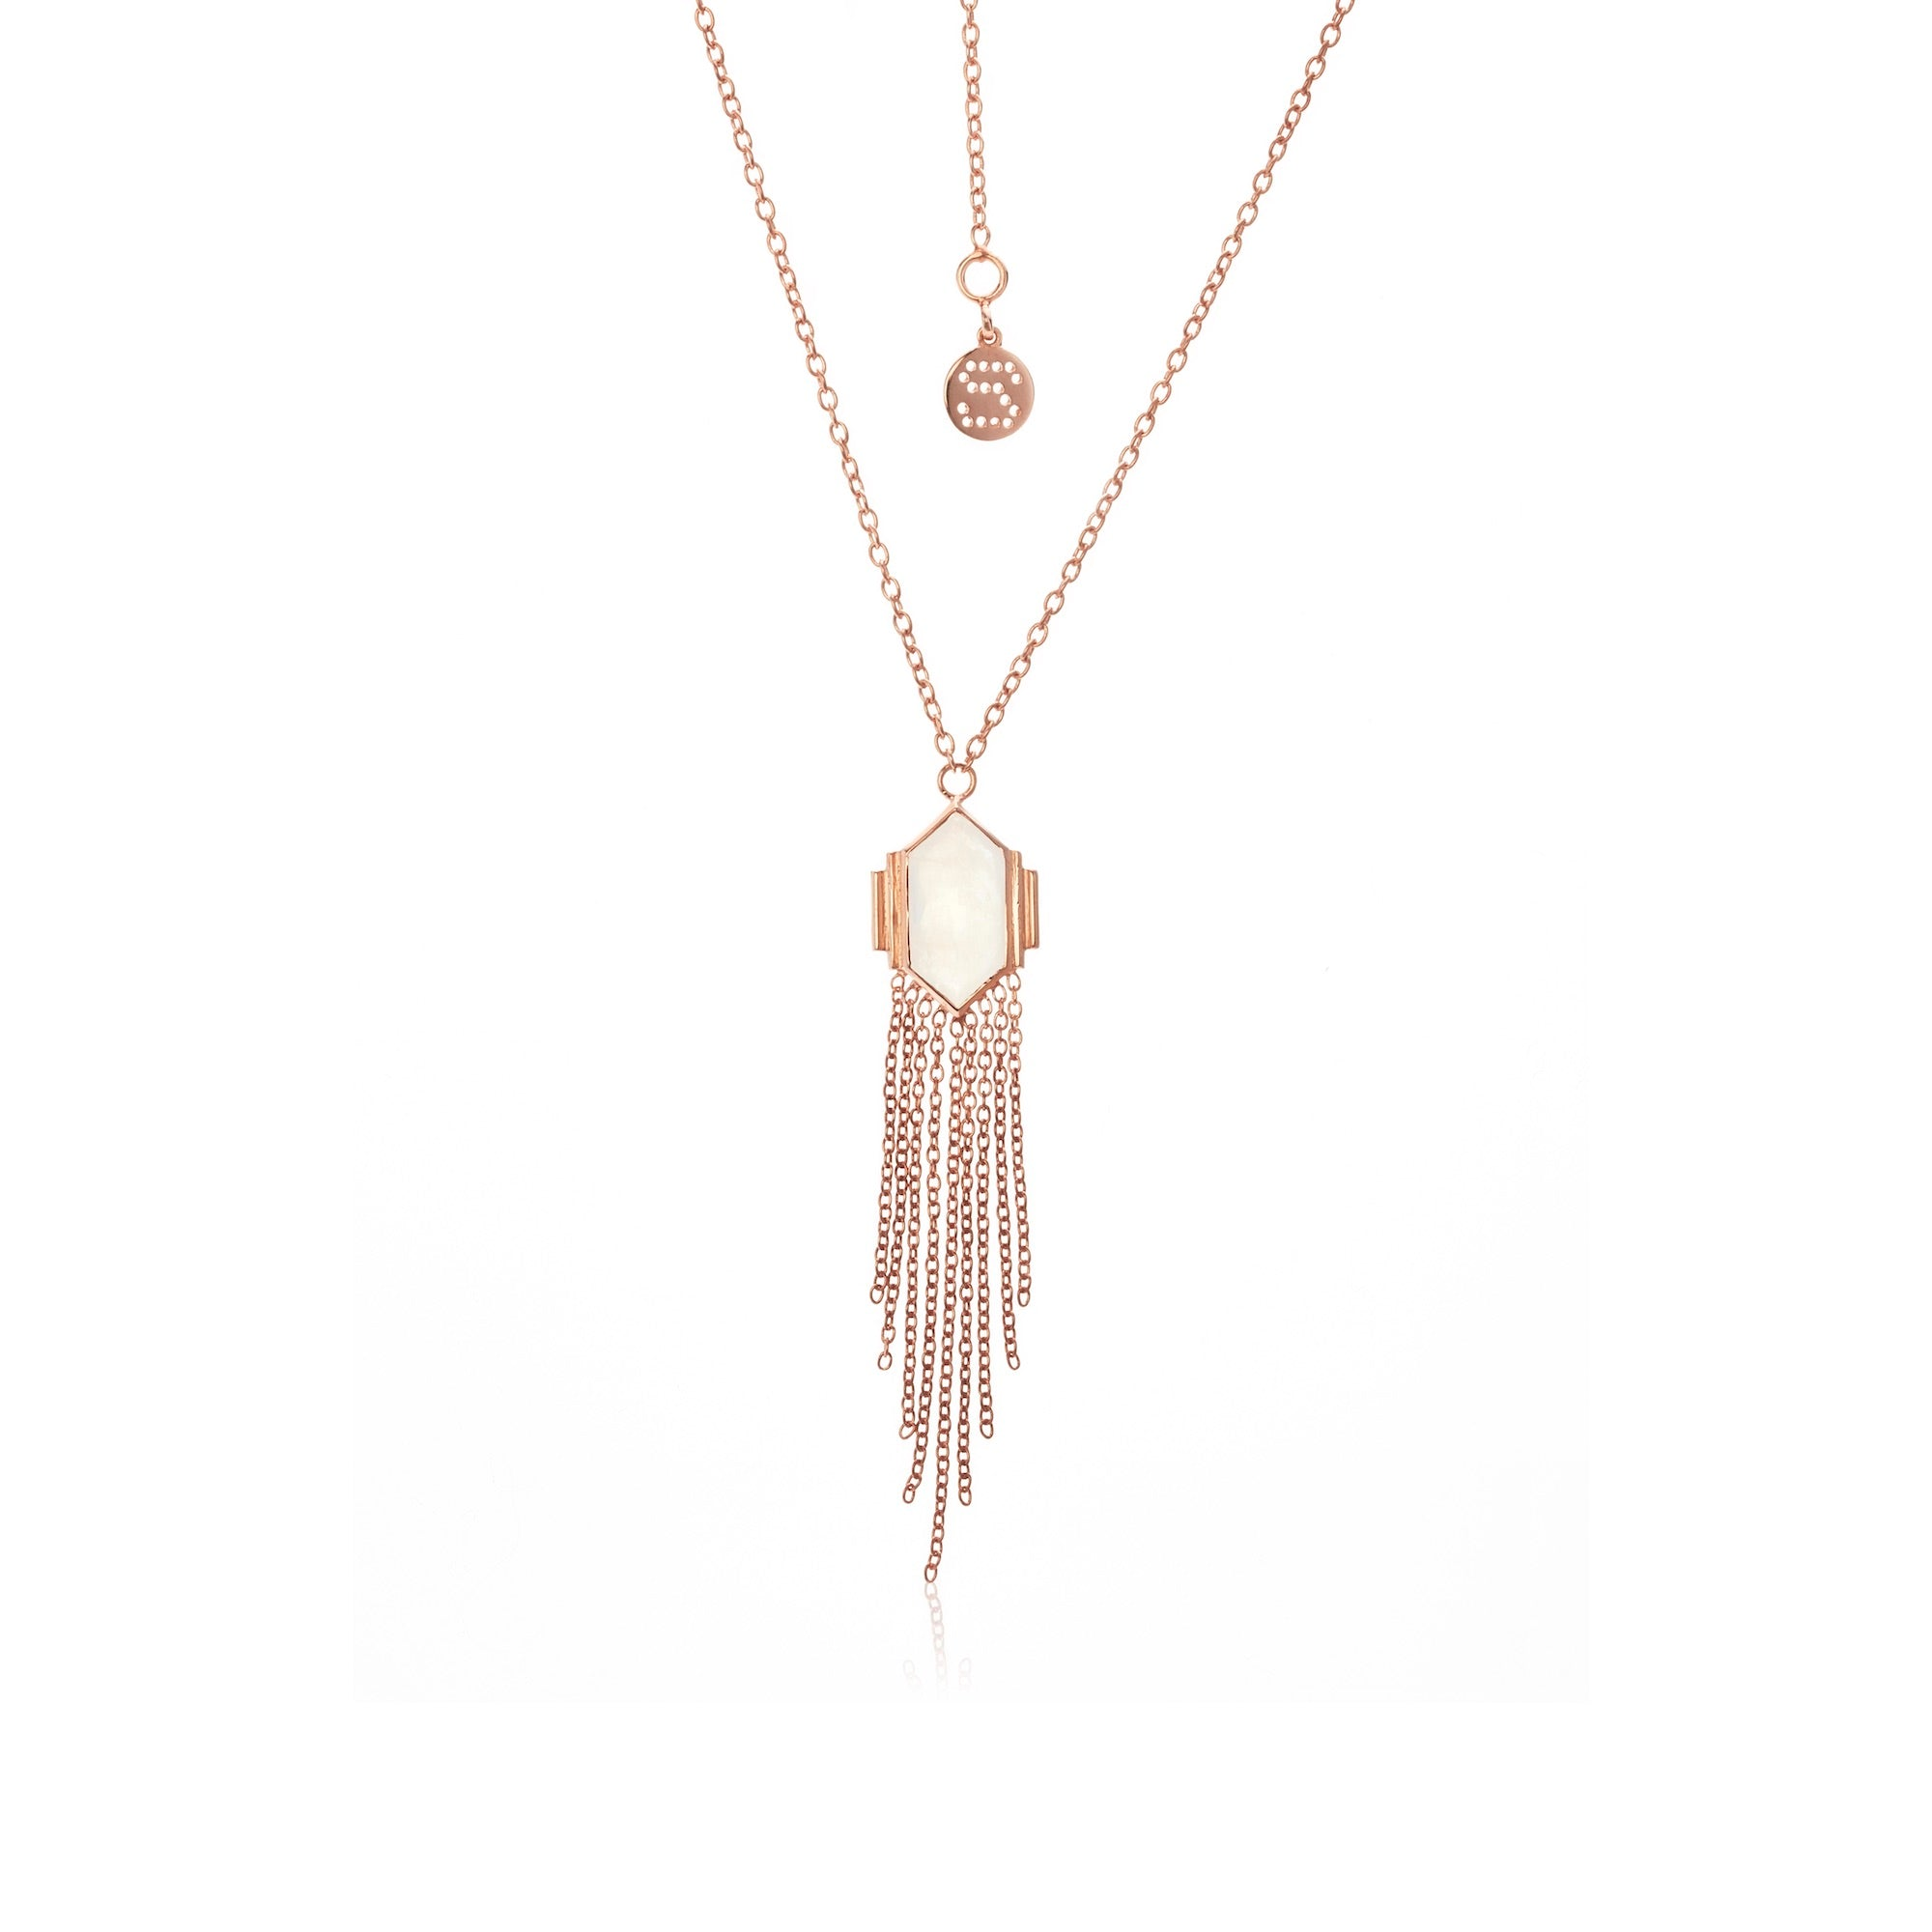 Silk & Steel Jewellery Glamour Fringe Necklace Moonstone Rose Gold